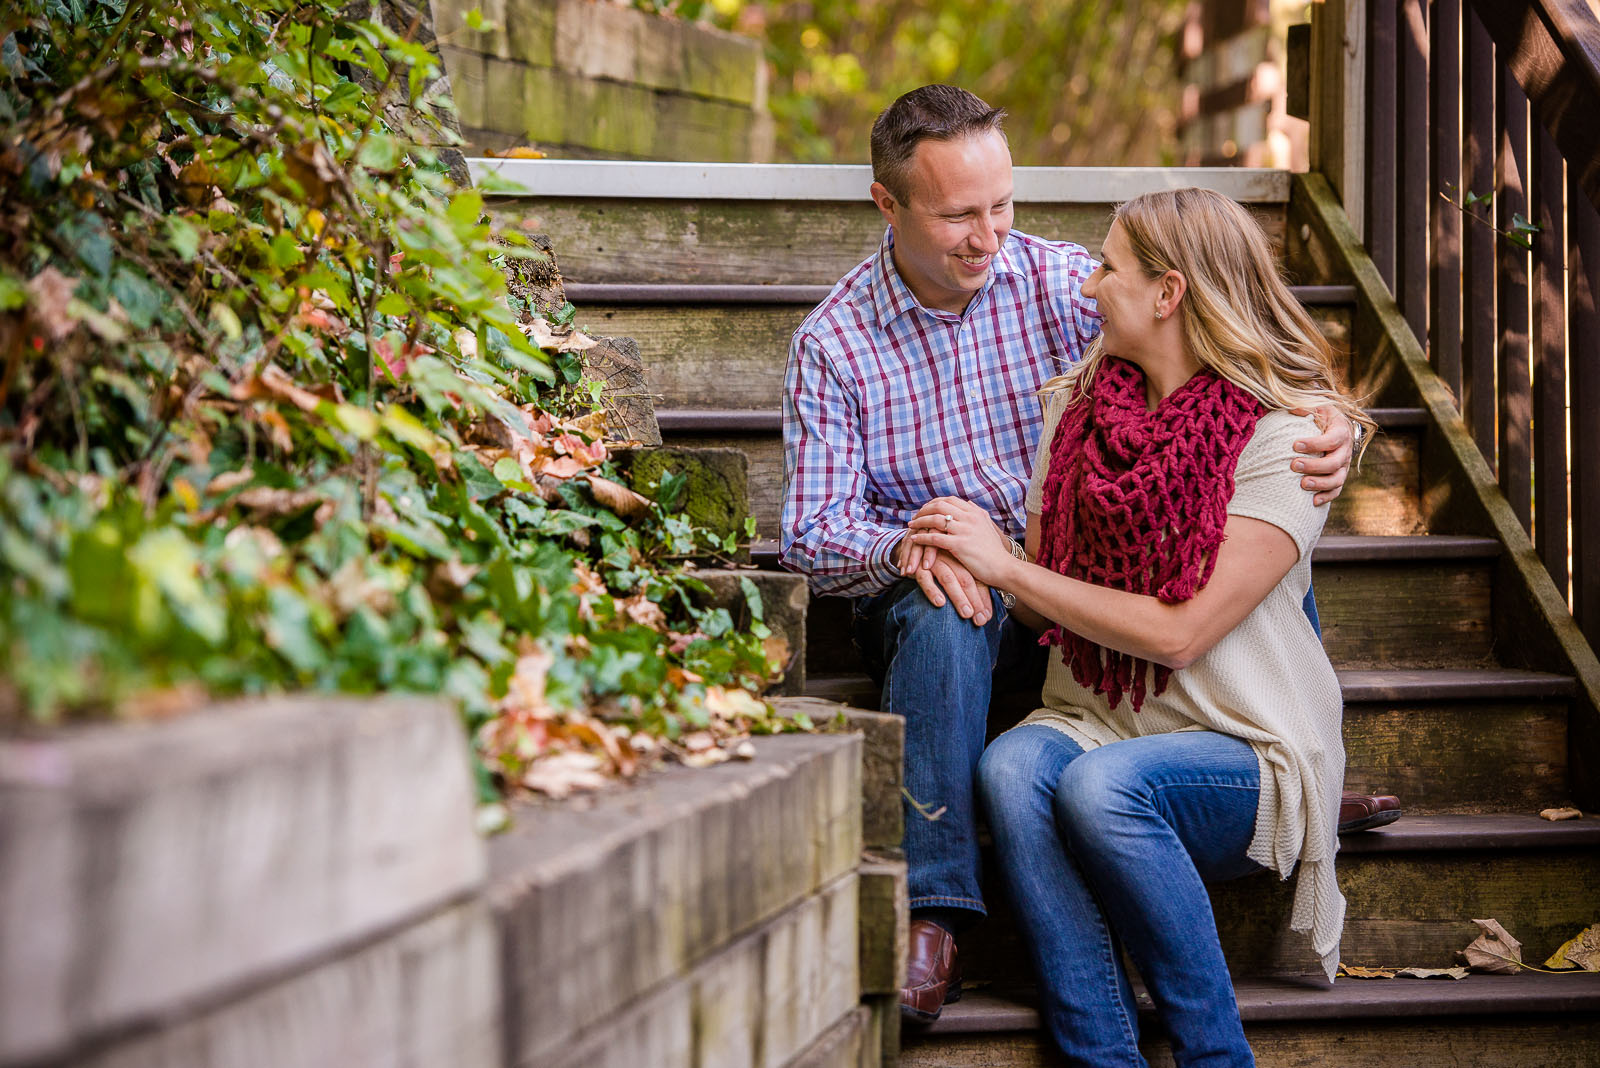 Eric_and_Christy_Photography_Blog_Megan_Nate_Engagement-3